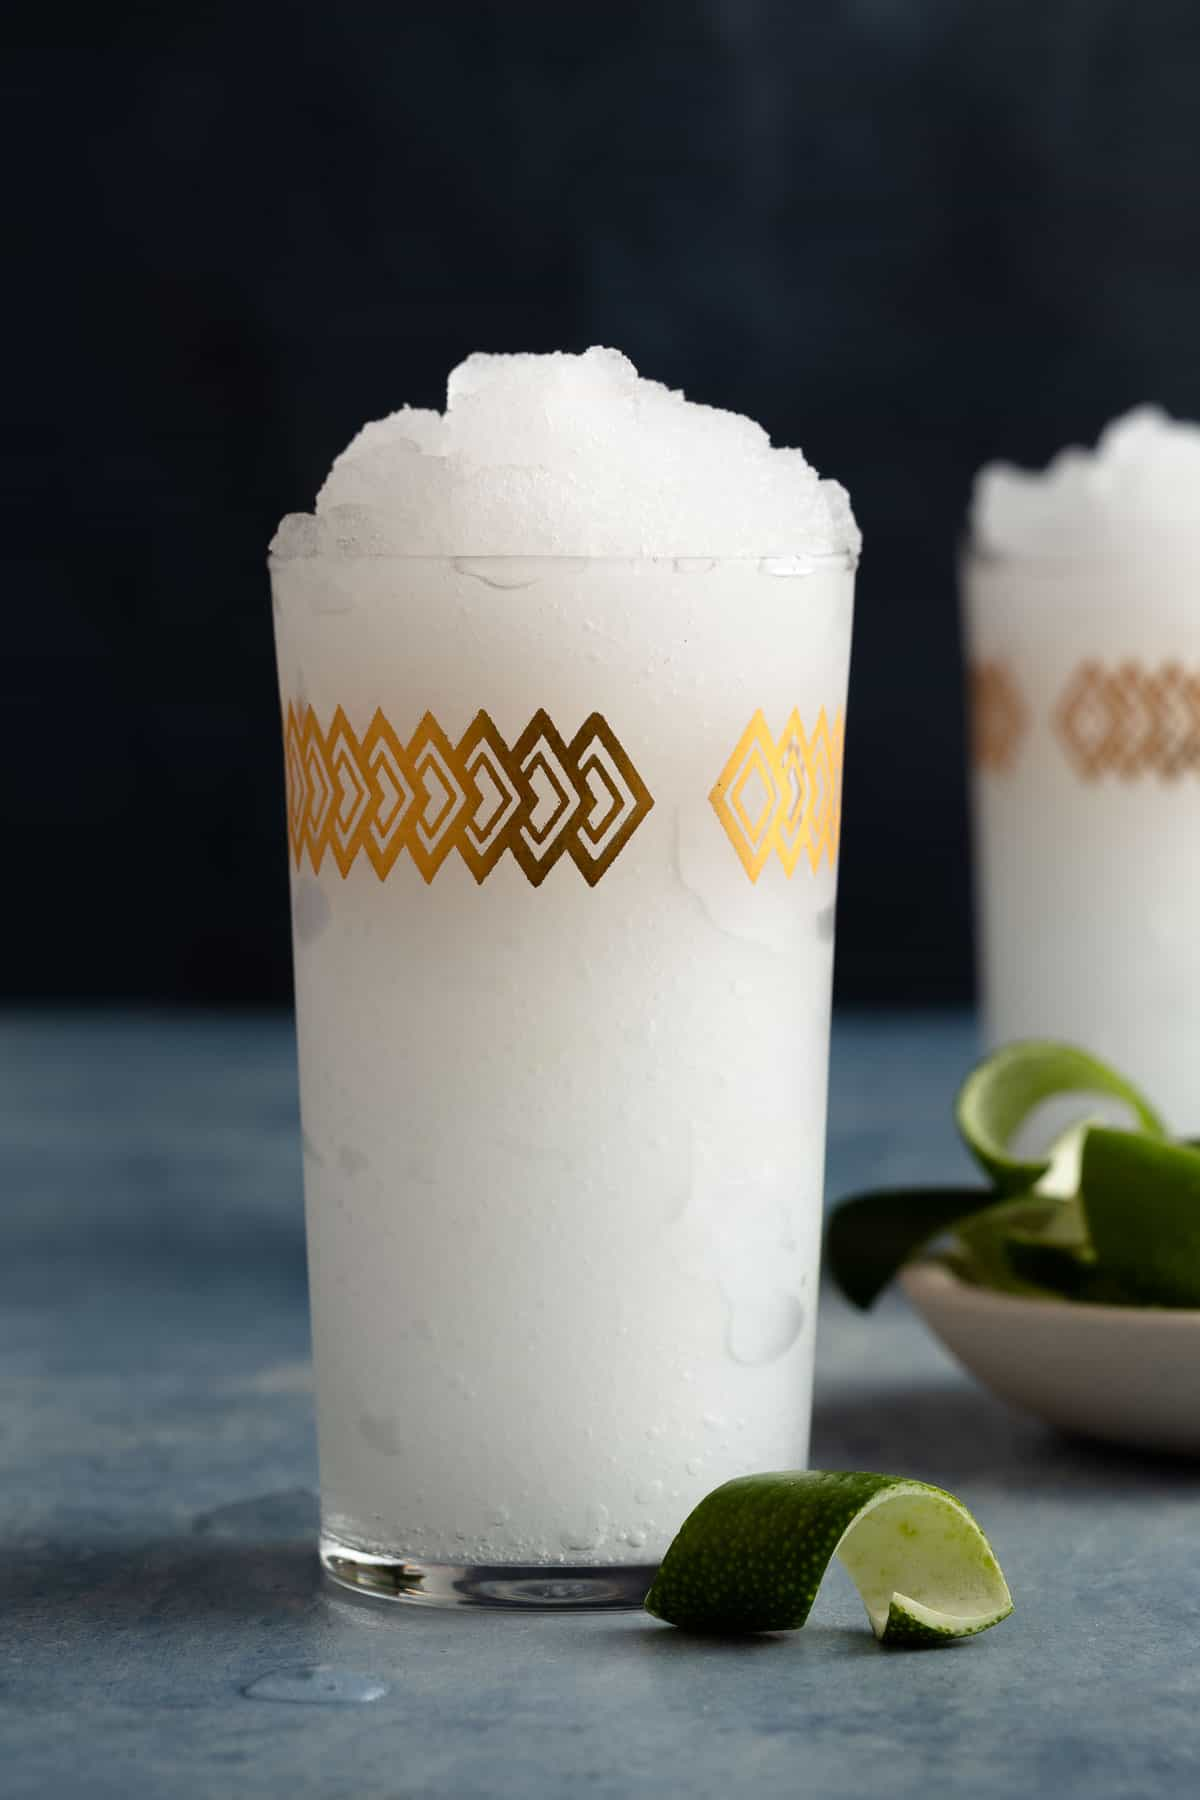 tall glass filled with a white frozen gin and tonic